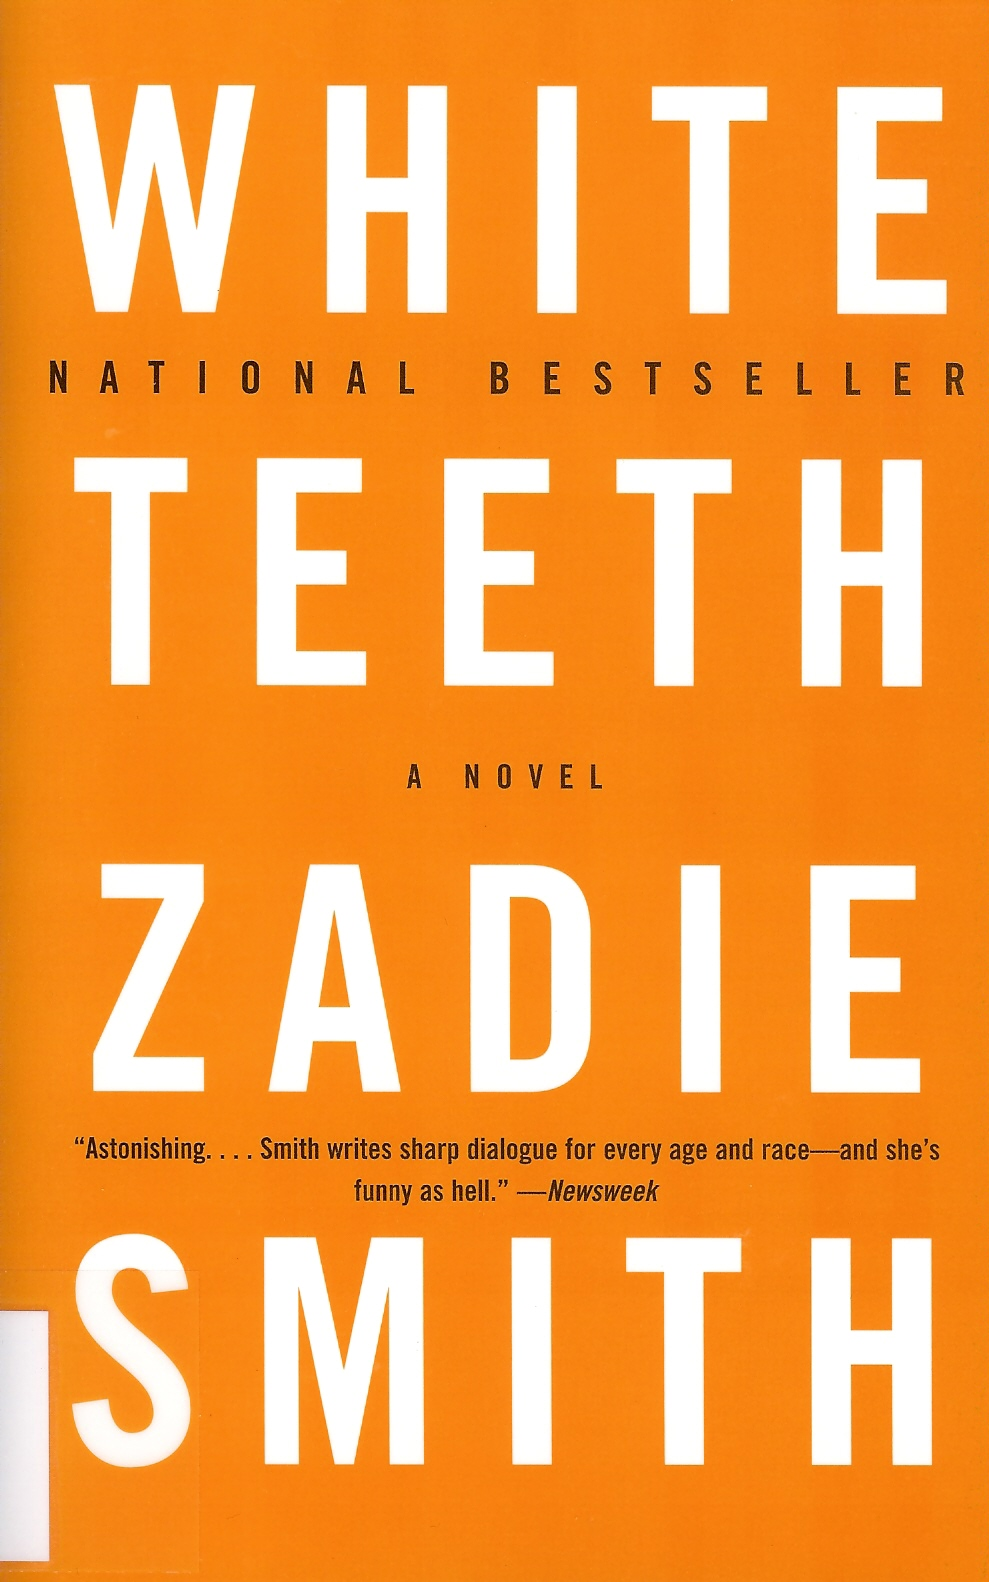 white teeth by zadie smith essay White teeth has been translated into over twenty languages and was adapted for channel 4 television in 2002 zadie smith has also edited an anthology of zadie smith has also edited an anthology of erotic stories, piece of flesh (2001), and was nominated as one of the best of young british novelists.